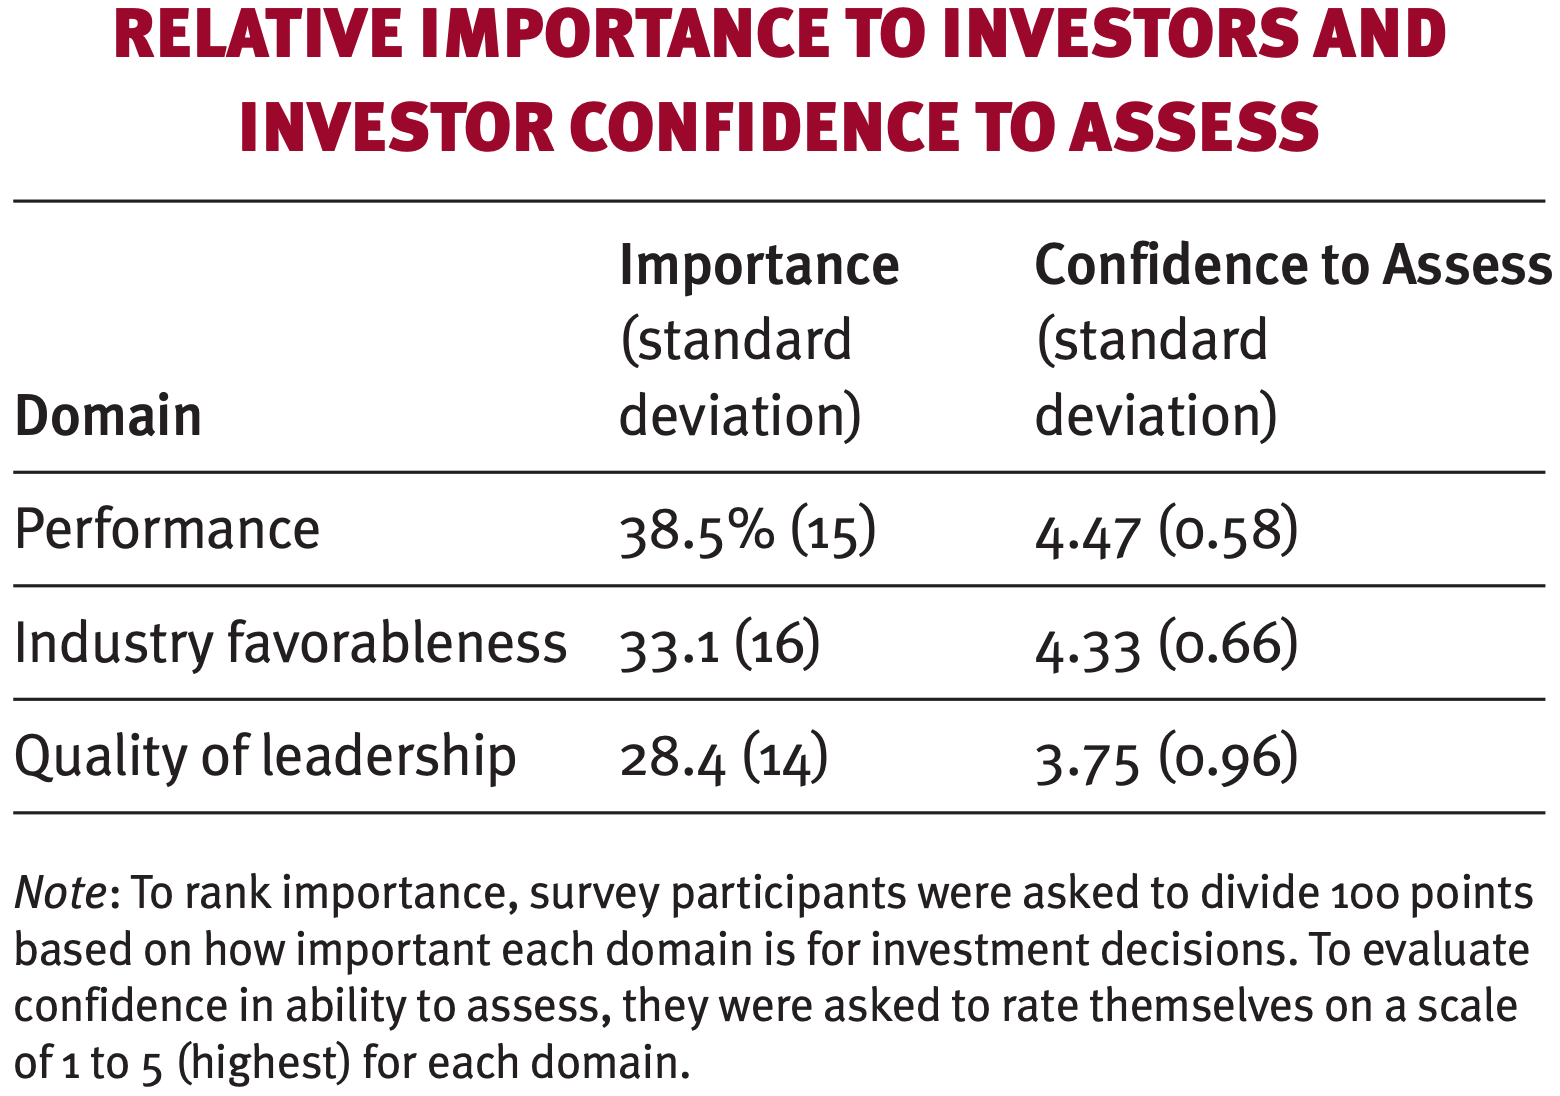 Relative importance to investors and investor confidence to assess